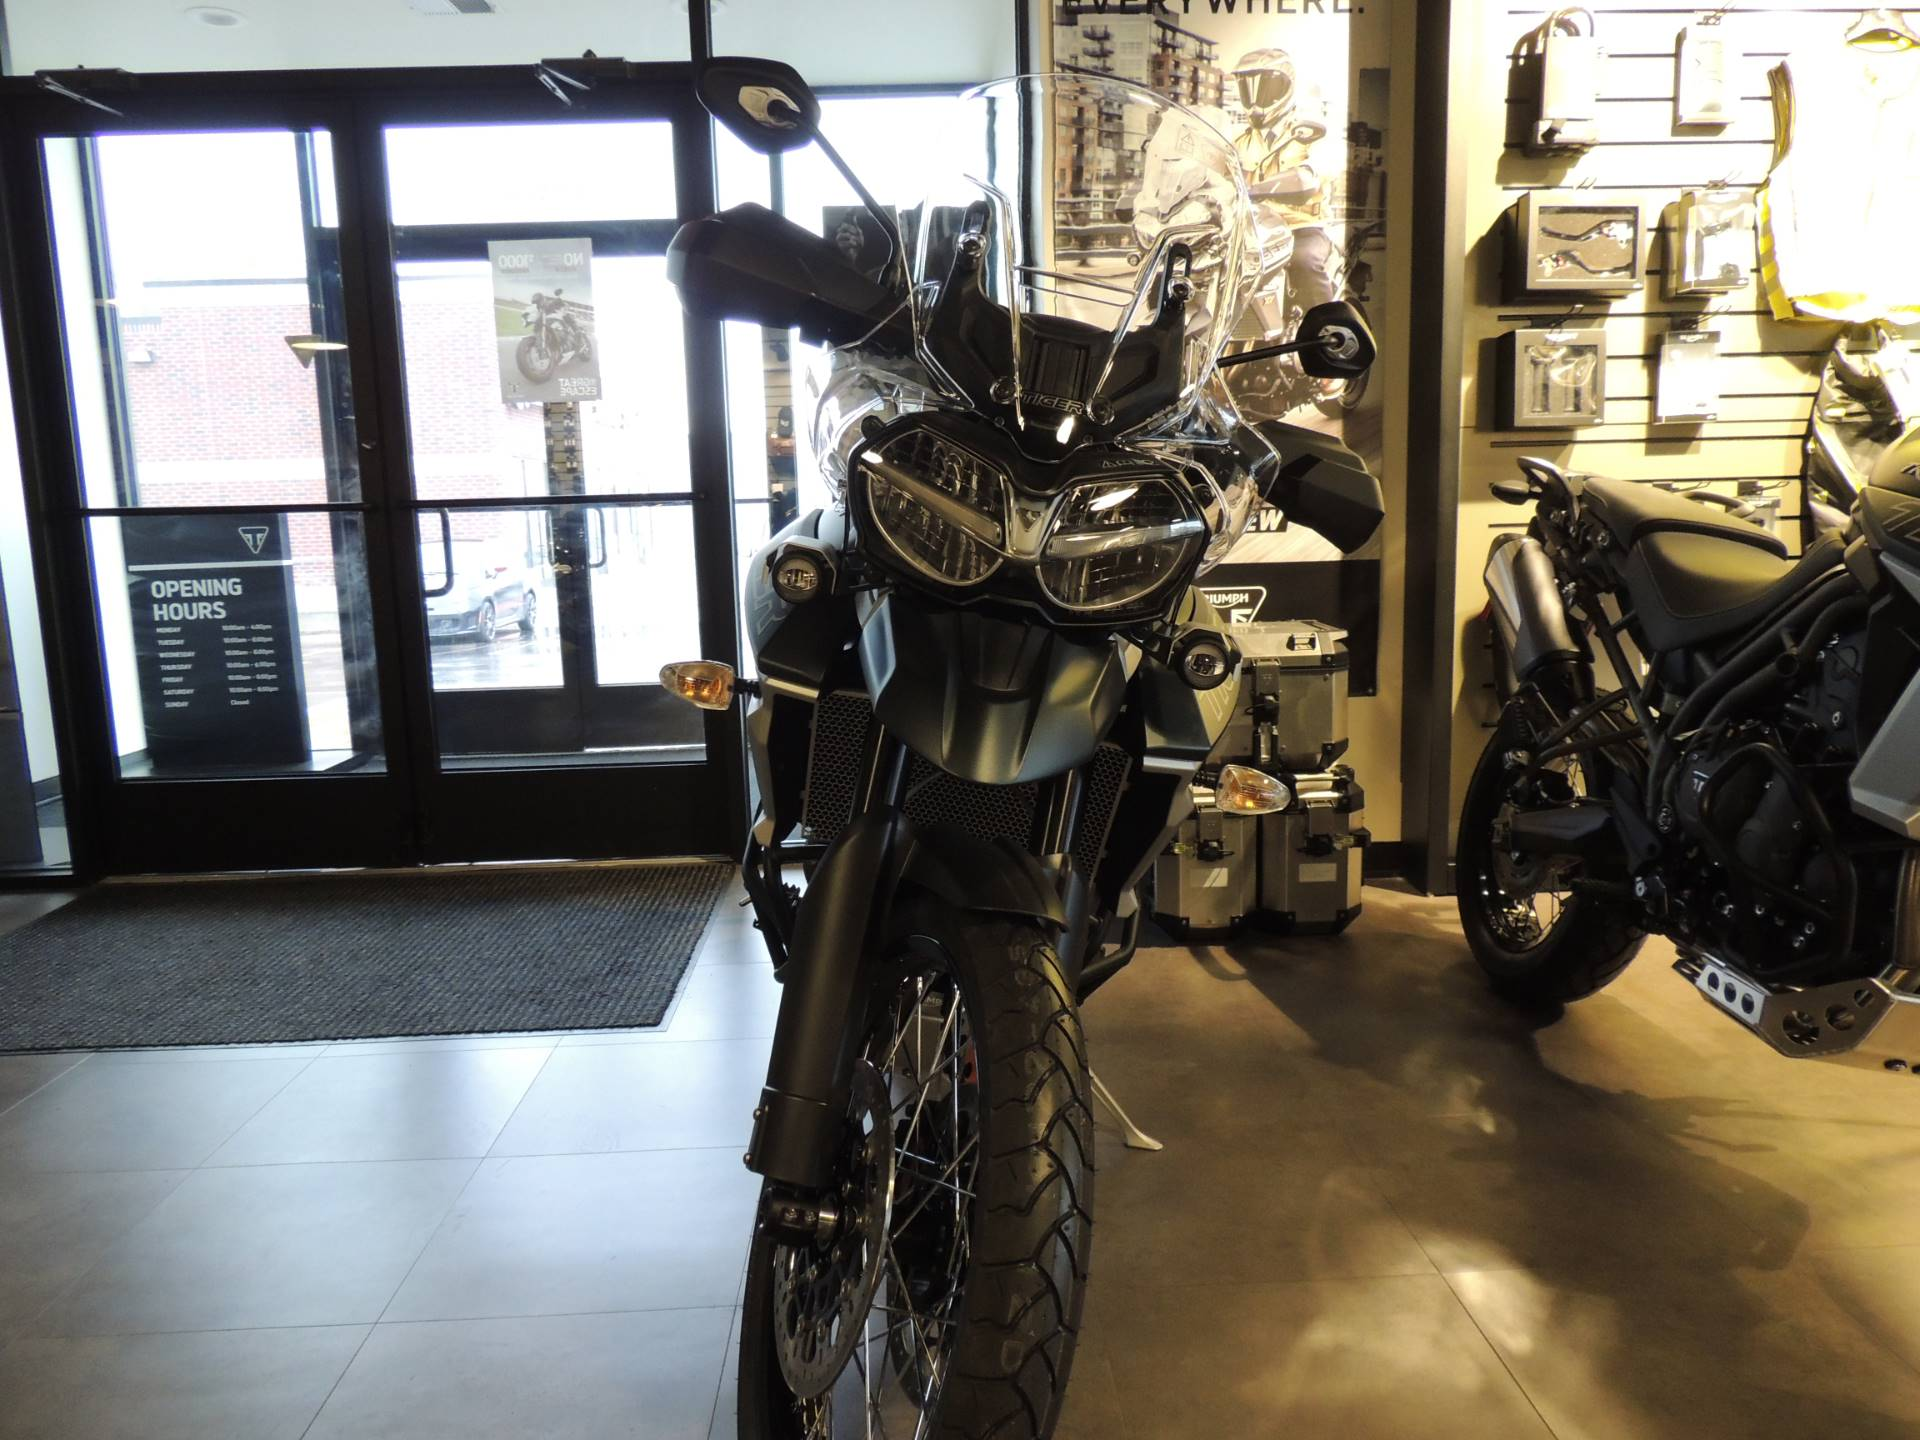 2019 Triumph Tiger 800 XCa in Shelby Township, Michigan - Photo 7